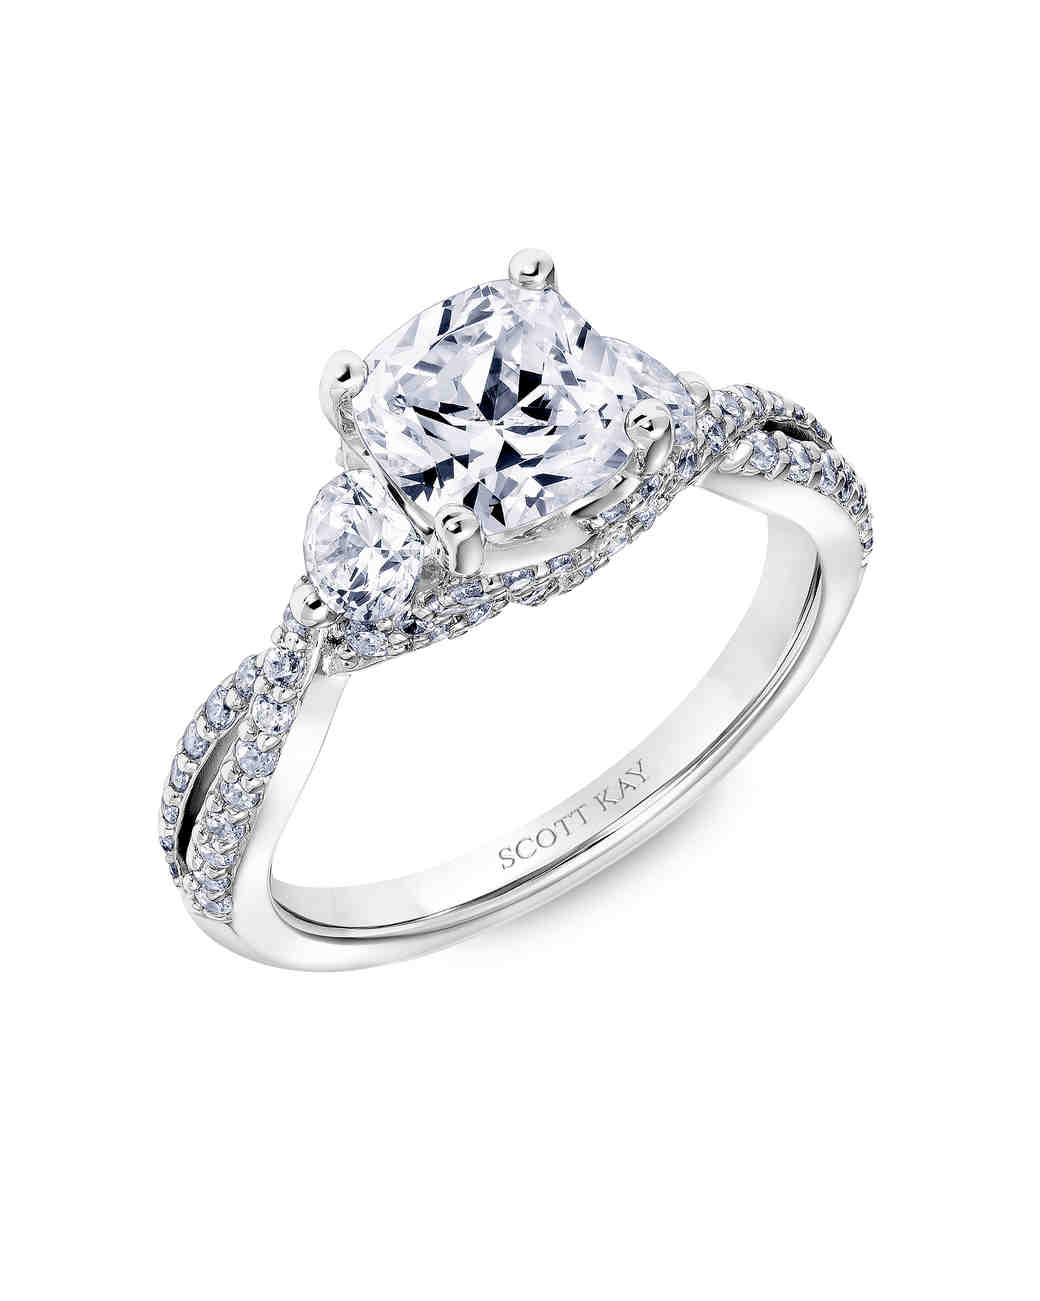 classy engagement uk style twist yyeetih promise rings solitaire wedding diamond